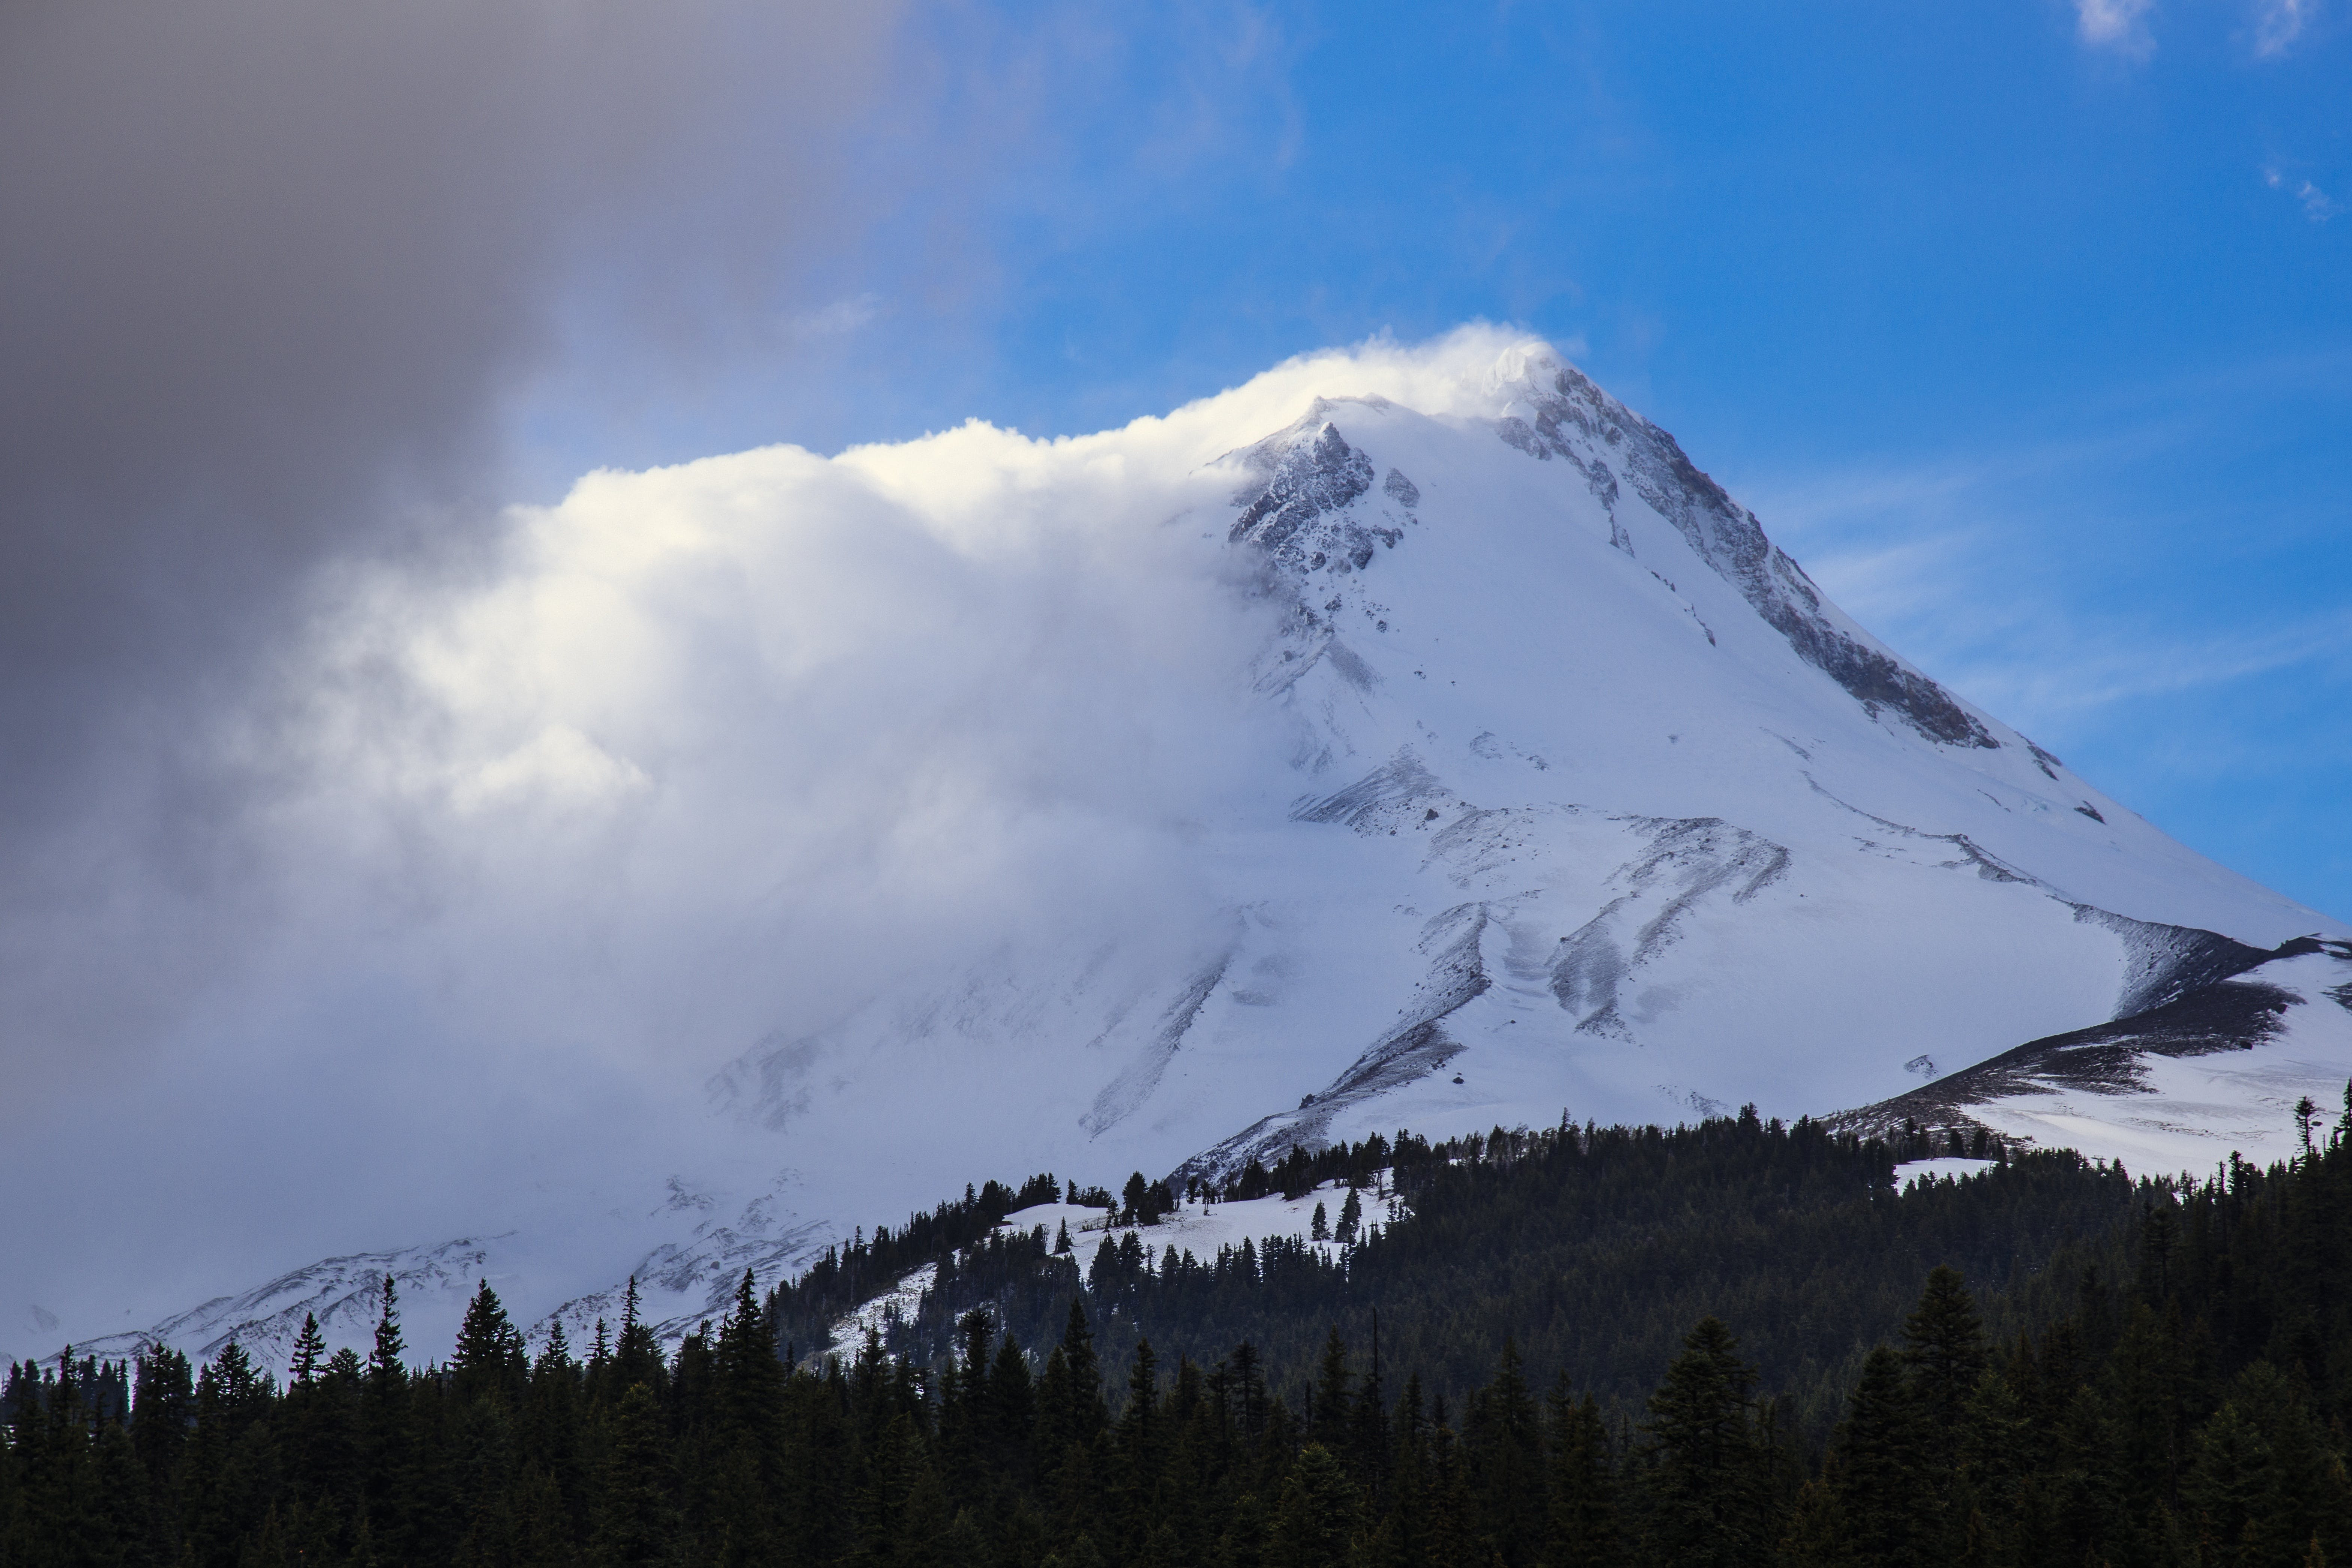 Snow Covered Mountain Under Blue and White Sunny Cloudy Sky